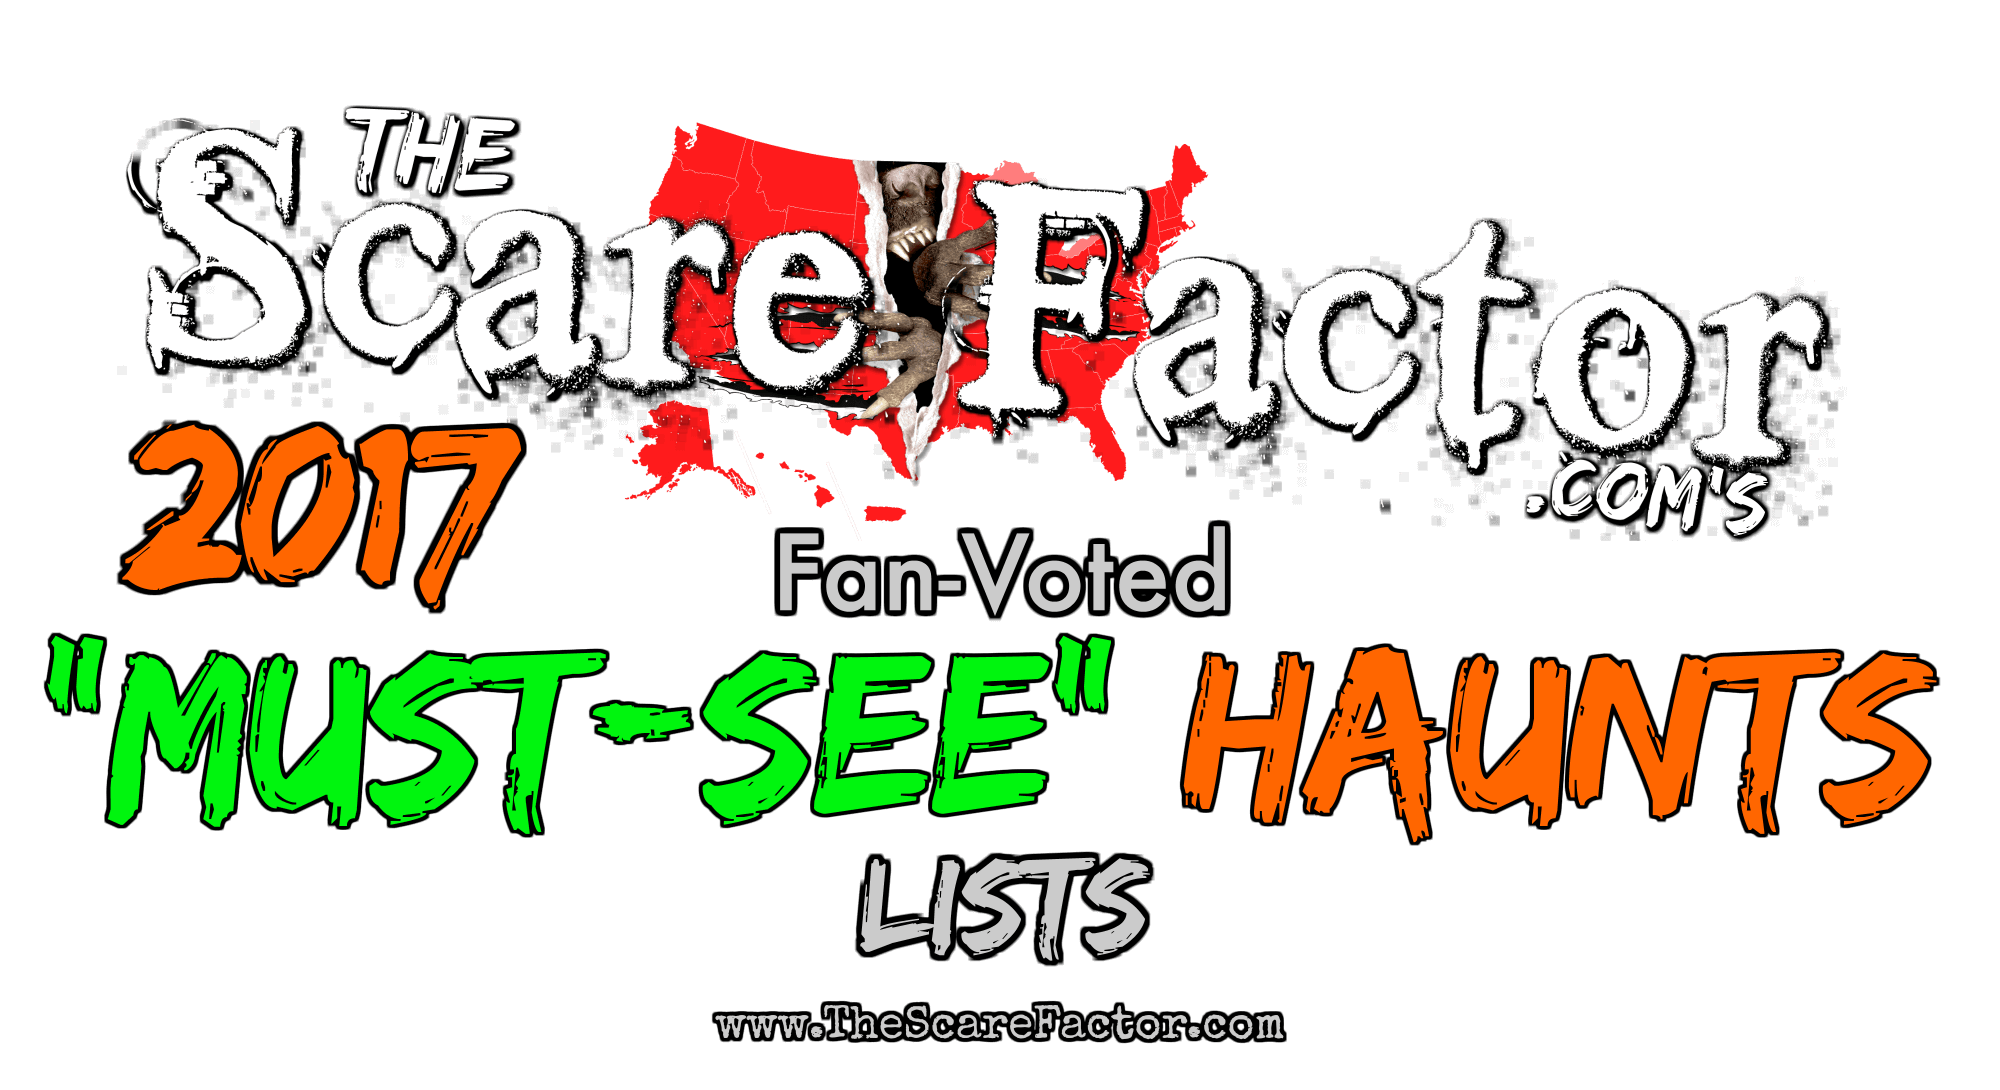 Top Missouri Haunted Houses Lists